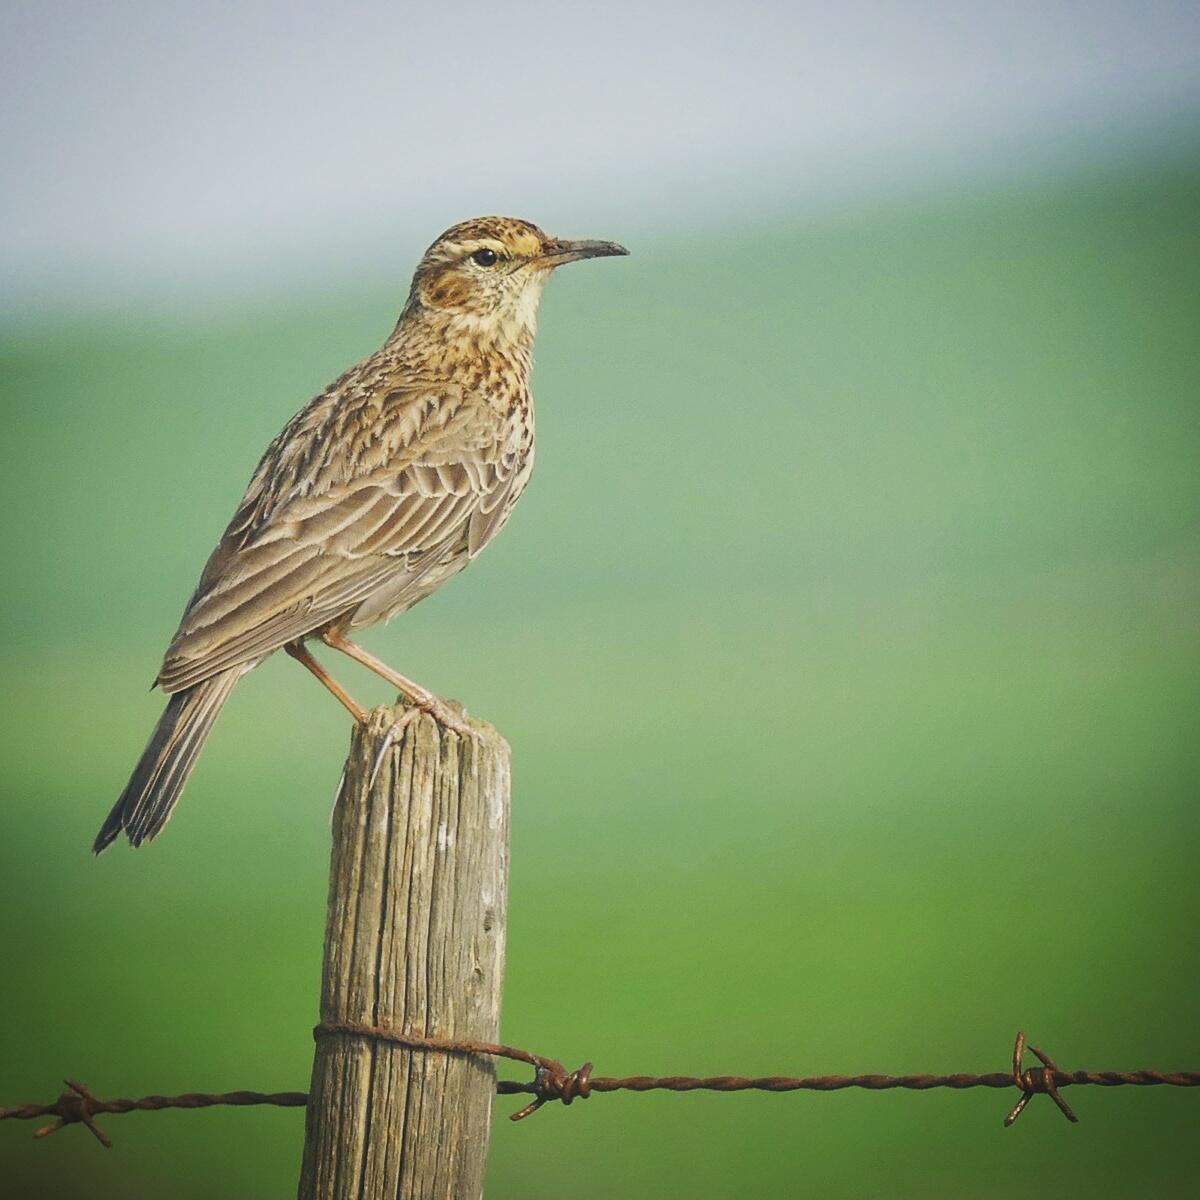 Noah's view of an Agulhas Lark, a super-endemic bird found only on the Agulhas Plains of South Africa's Western Cape province. Noah Strycker